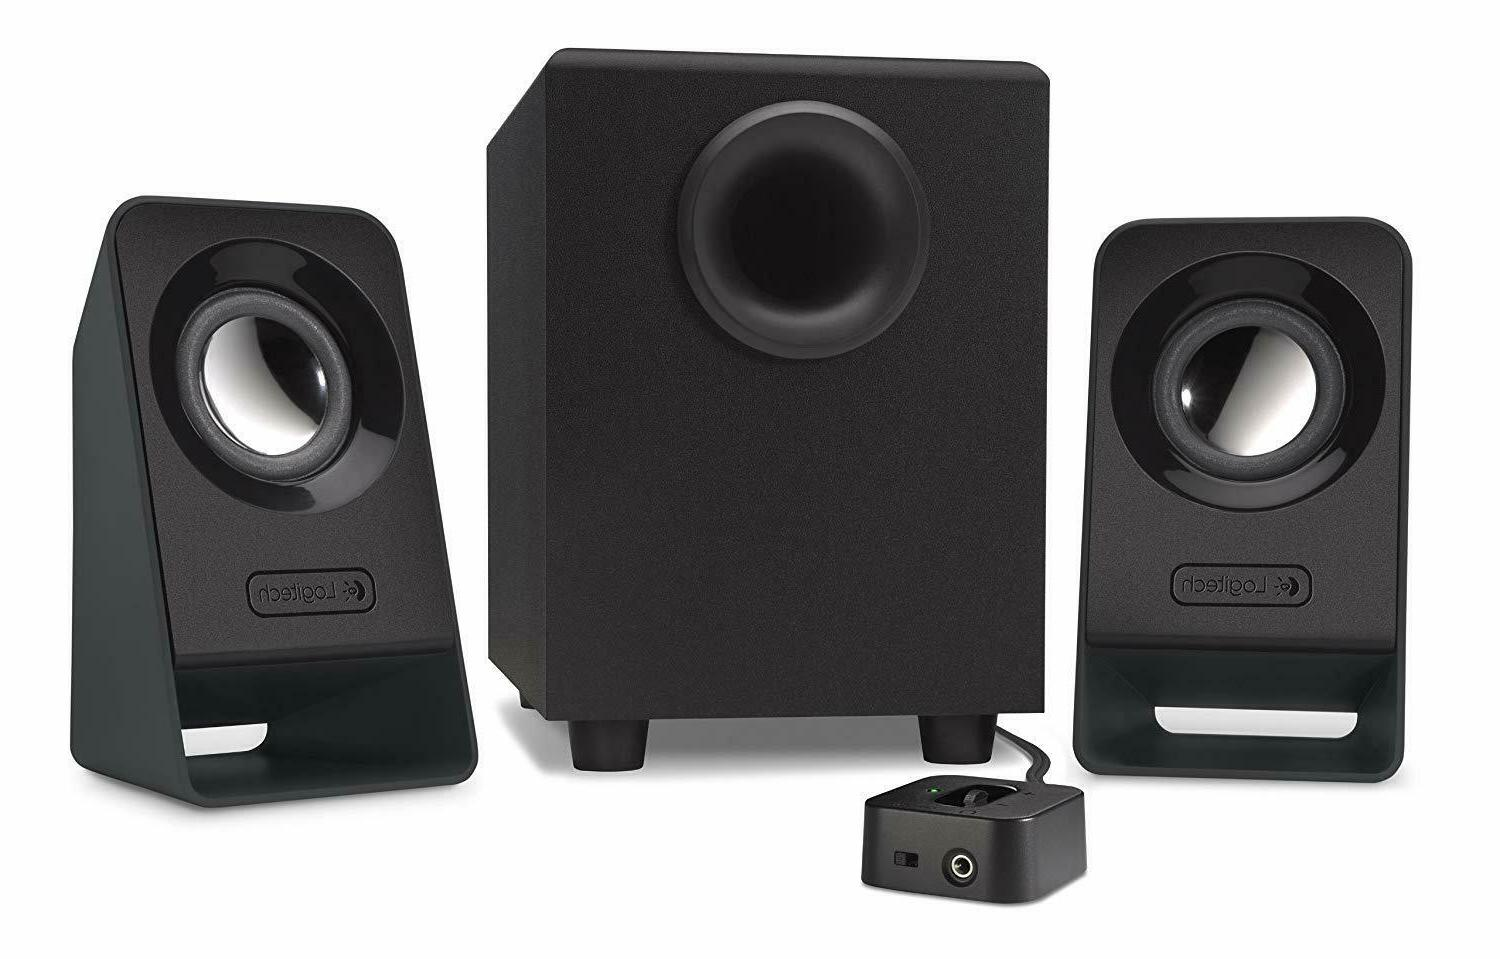 Logitech Computer PC Speakers 2.1 Stereo Sound System with S